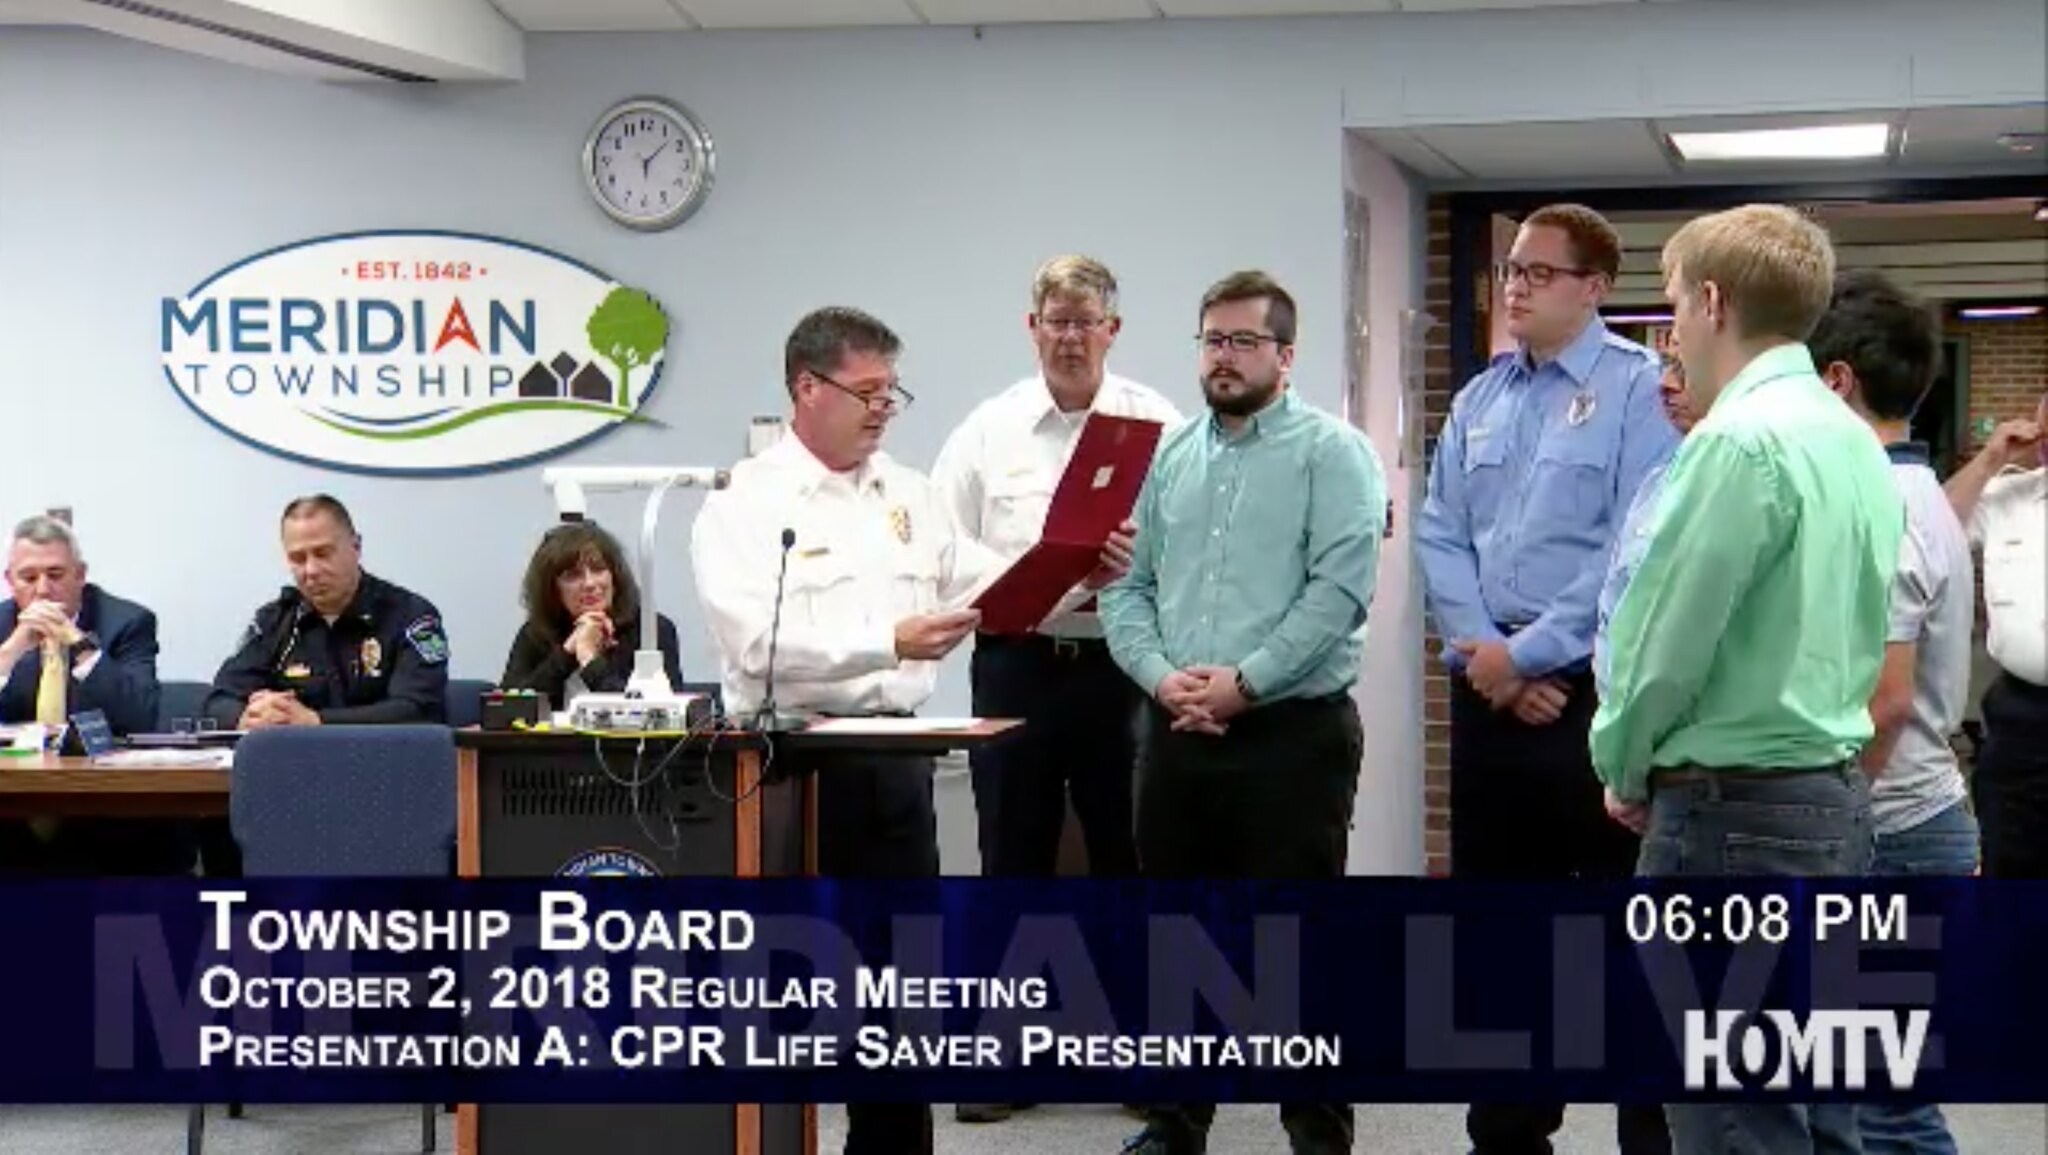 Meridian Township Fire Chief Presents CPR Life Saver Presentation